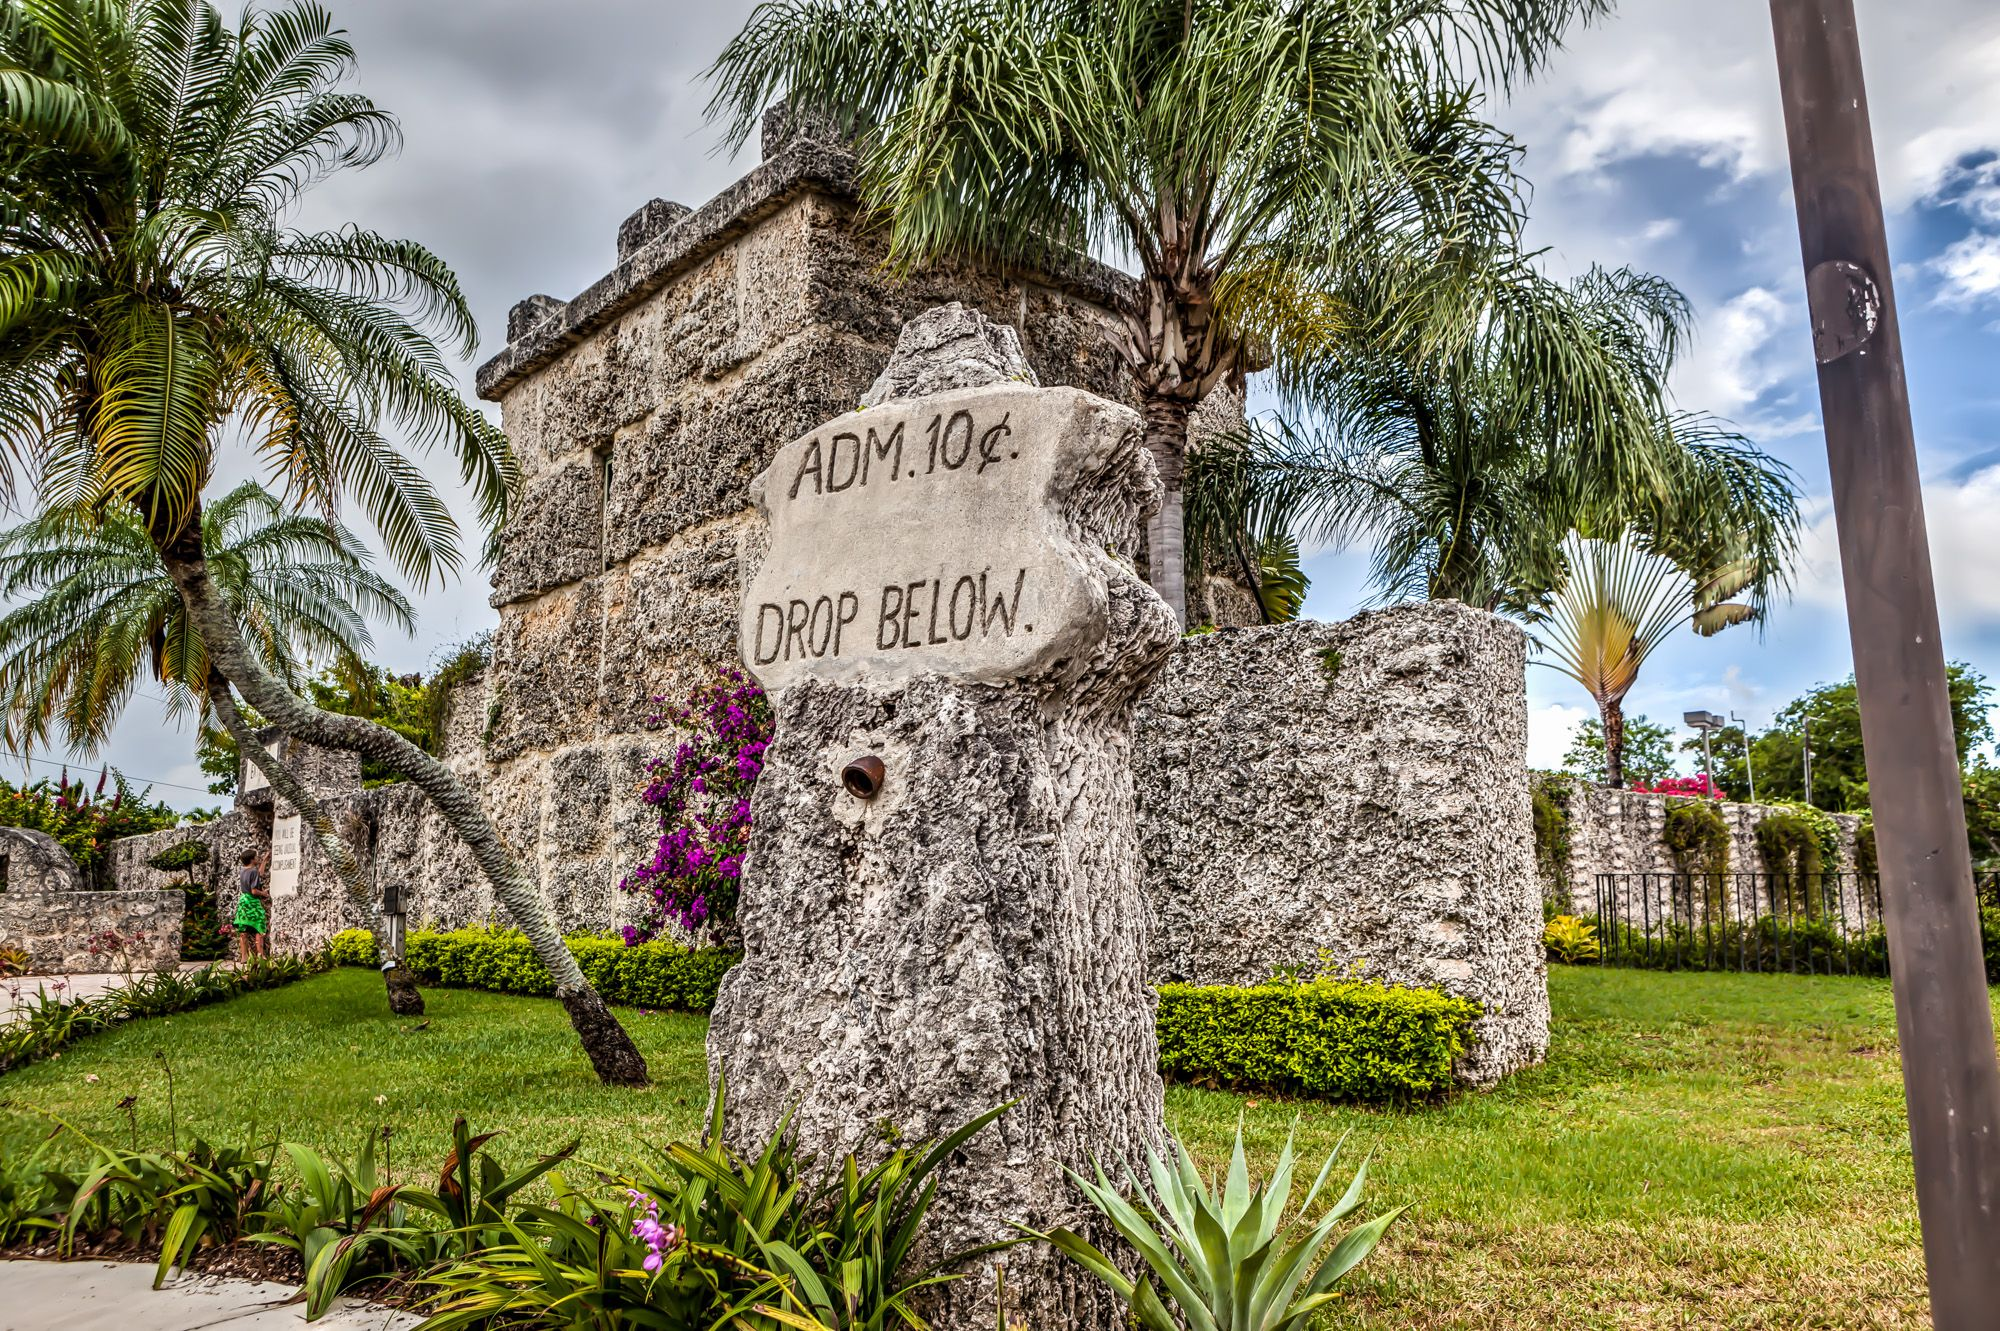 Coral Castle – an unsolved mystery in the Sunshine State